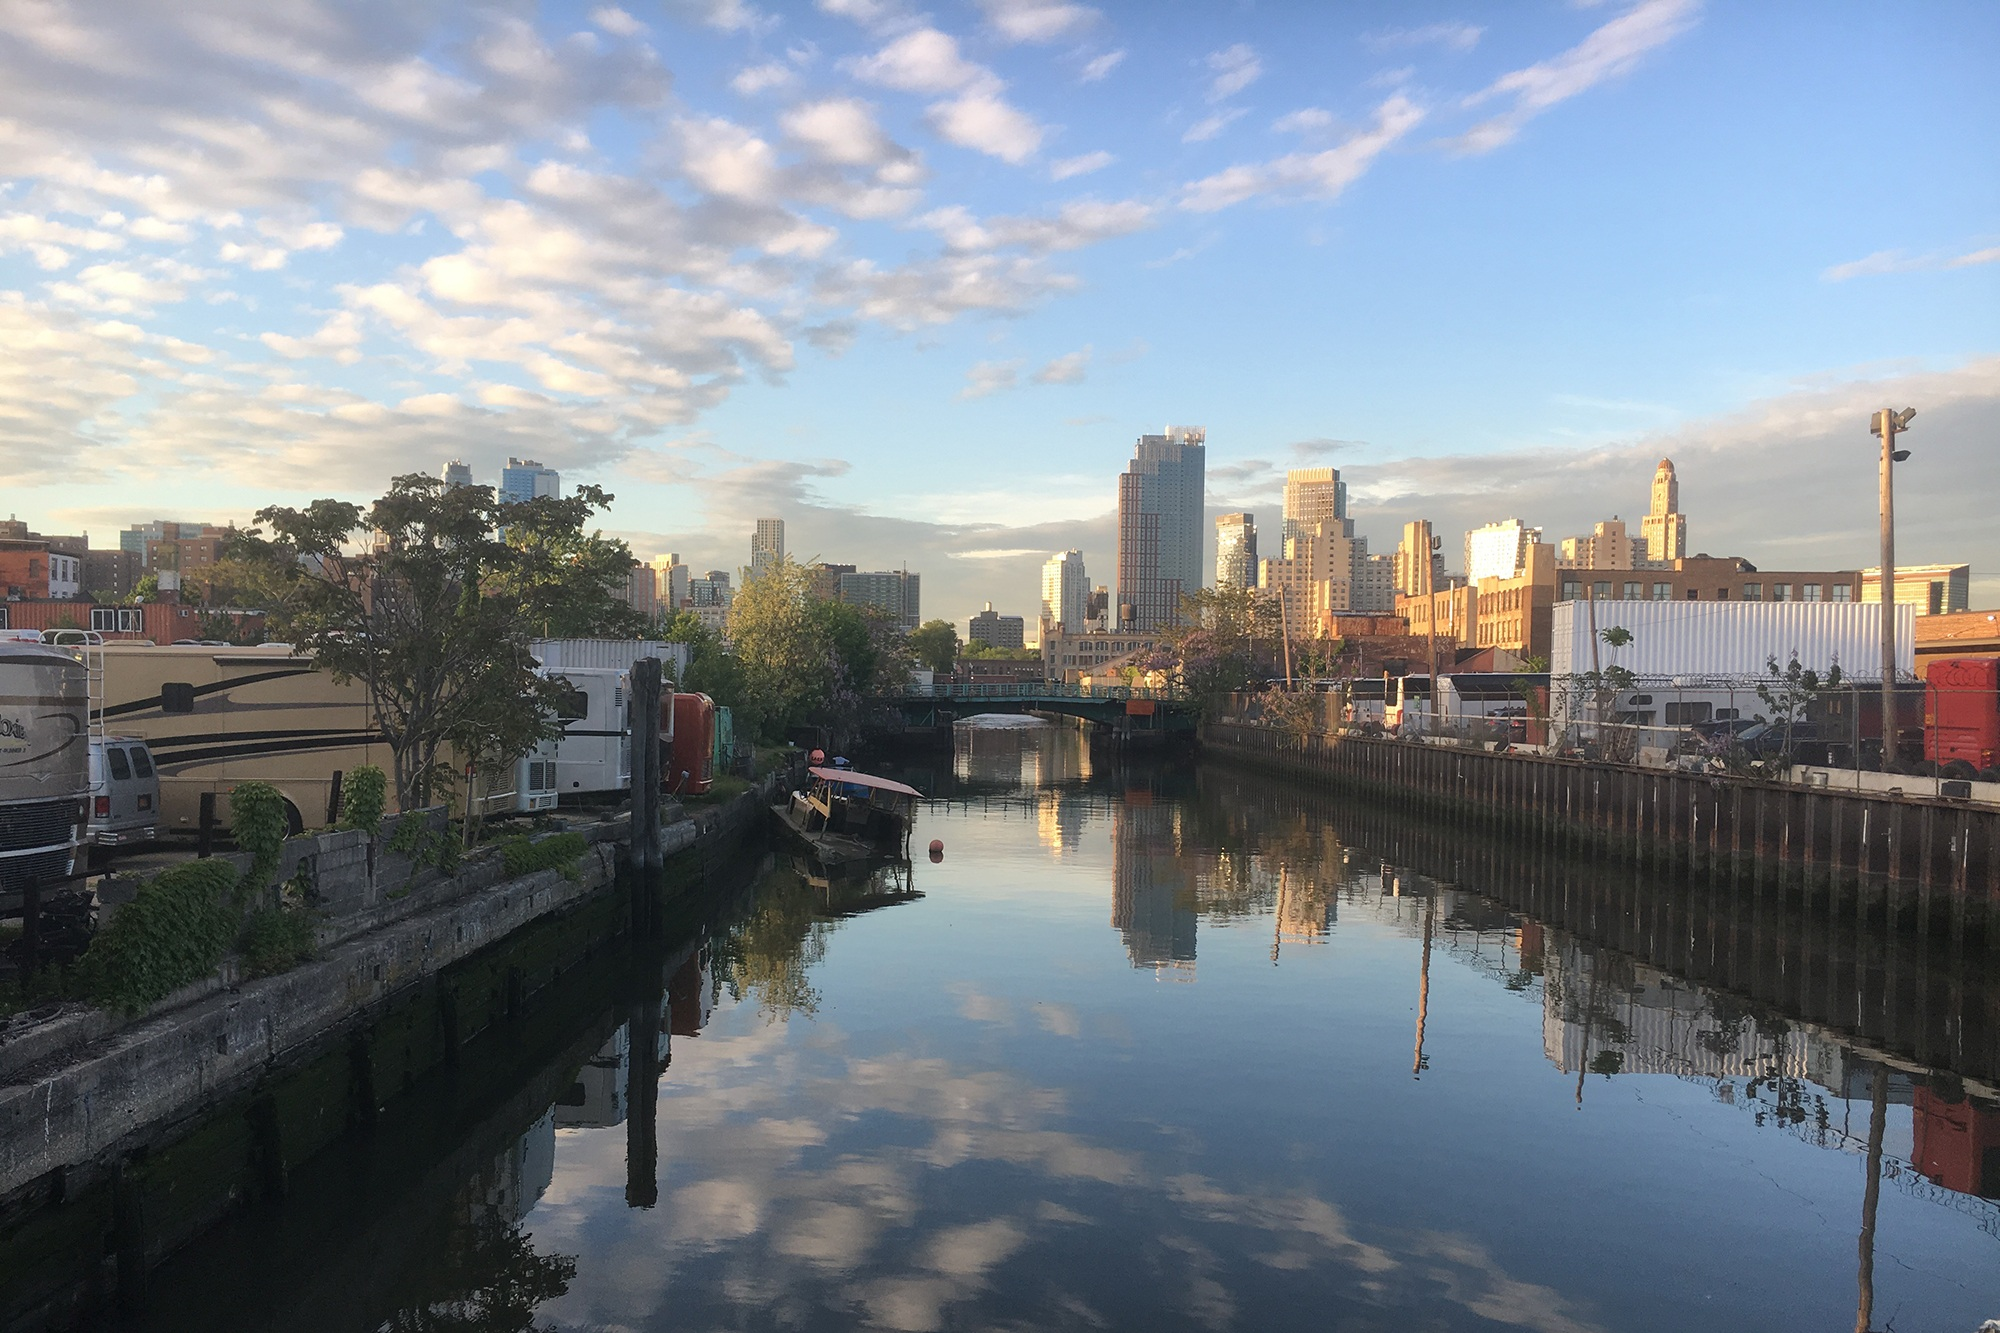 David Briggs Selected As GbD's Executive Director - July 2015David Briggs is selected as Gowanus by Design's first Executive Director, a non-profit researching urban strategies in the neighborhood around the Gowanus Canal, an EPA Superfund site.